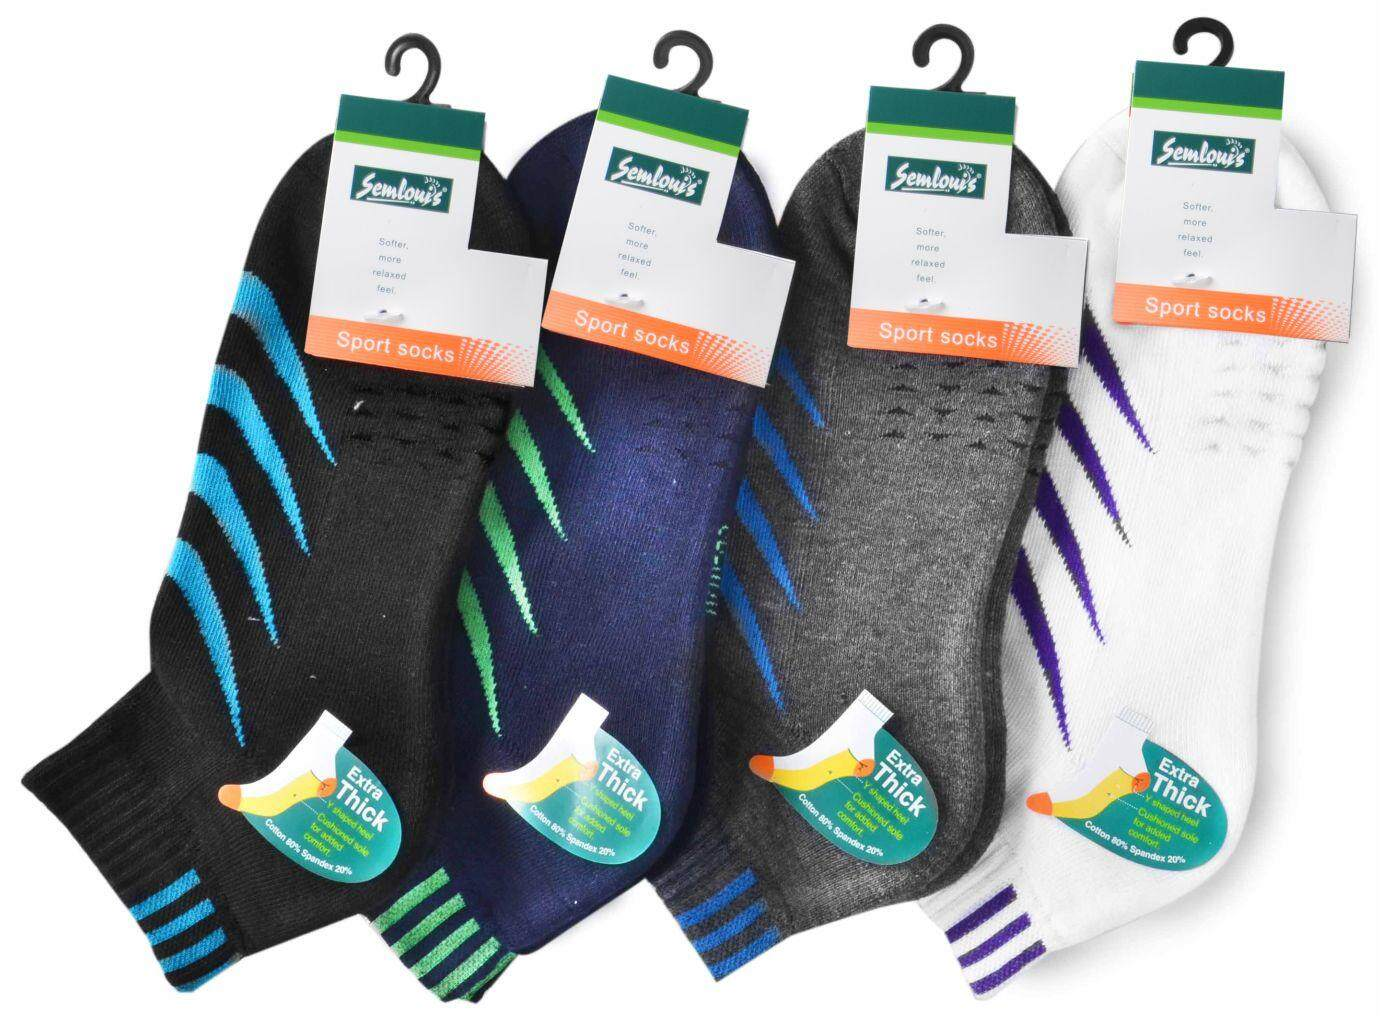 Semlouis Sport Ankle Cushion Base Socks - 4 Tilted Lines / PAIR